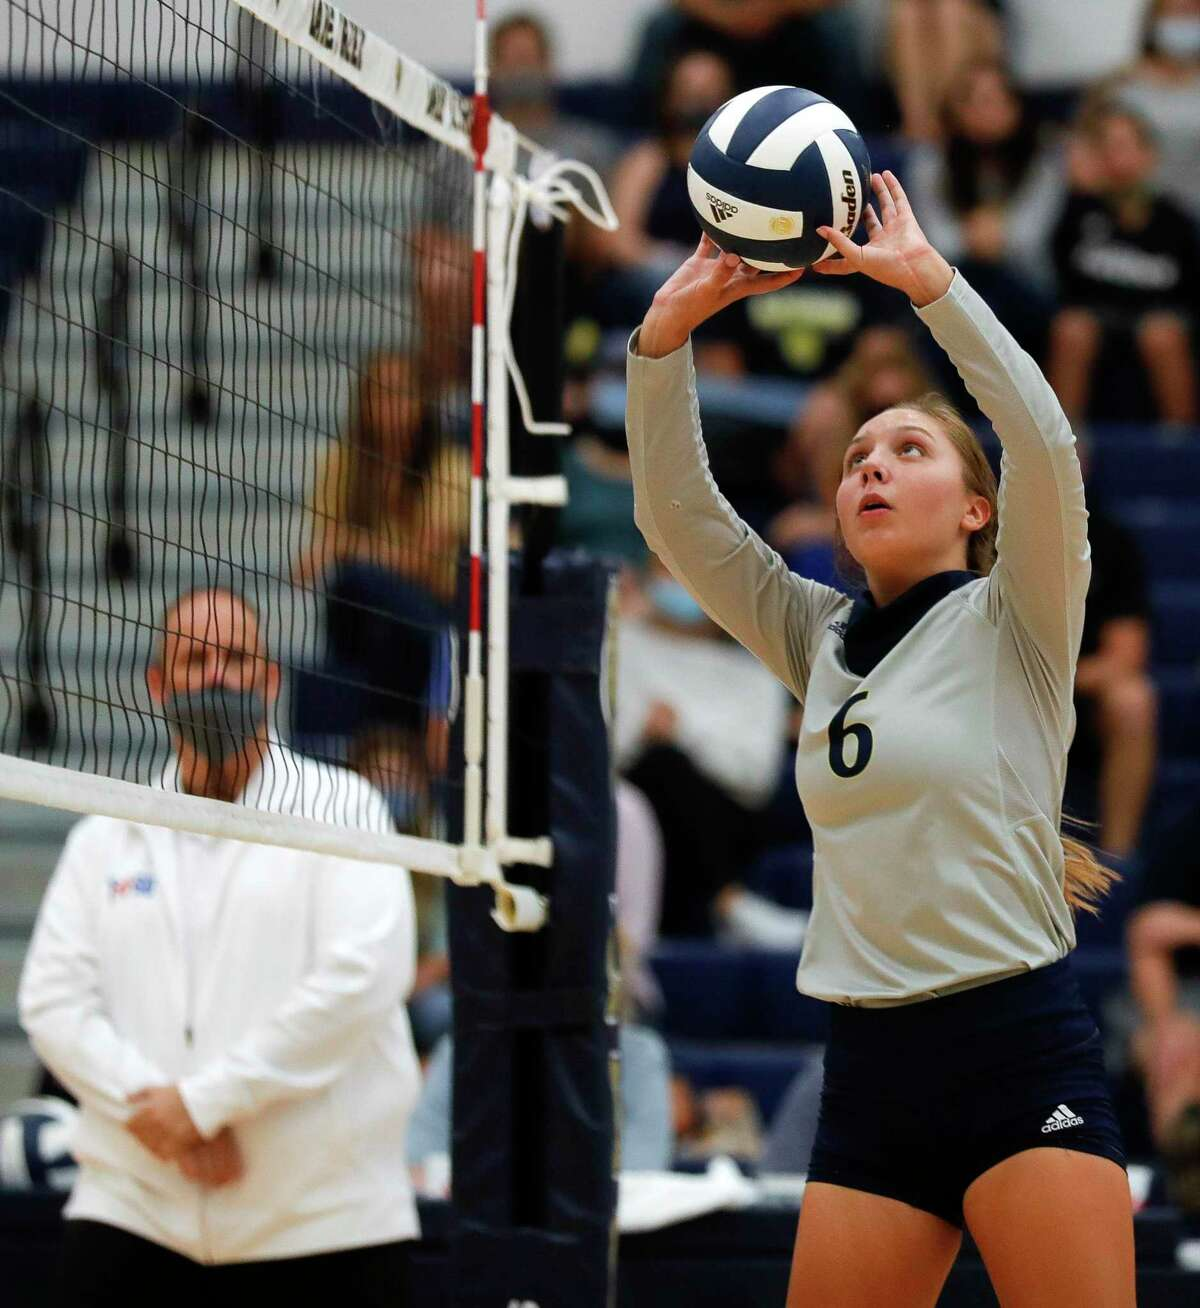 Lake Creek setter Regan Wells (6) pushes the ball during the first set of a non-district high school volleyball match at Lake Creek High School, Tuesday, Sept. 15, 2020, in Montgomery.